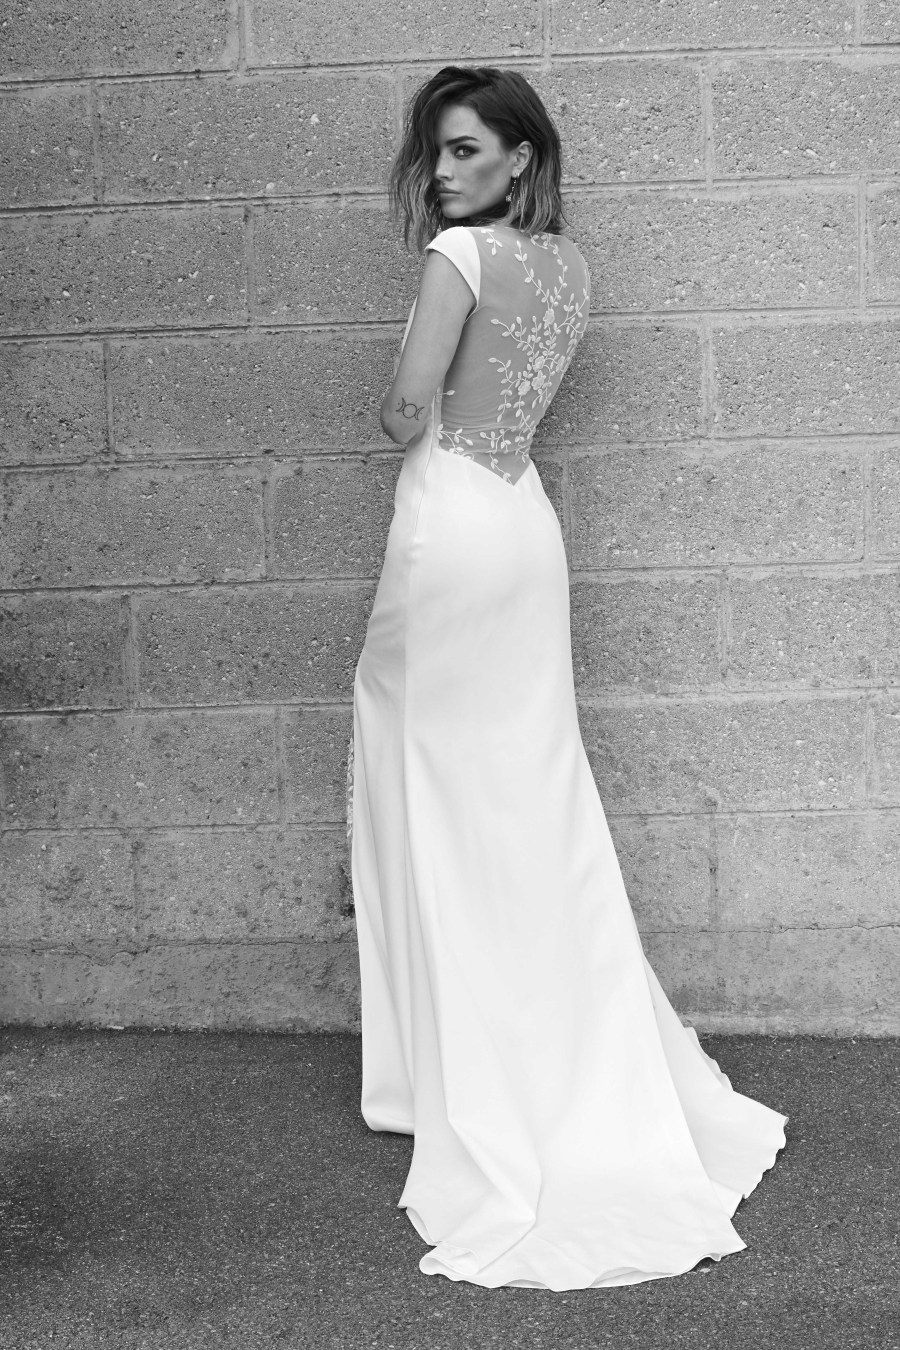 Rime Arodaky, Cool bride, fashion bridal, curvy bride